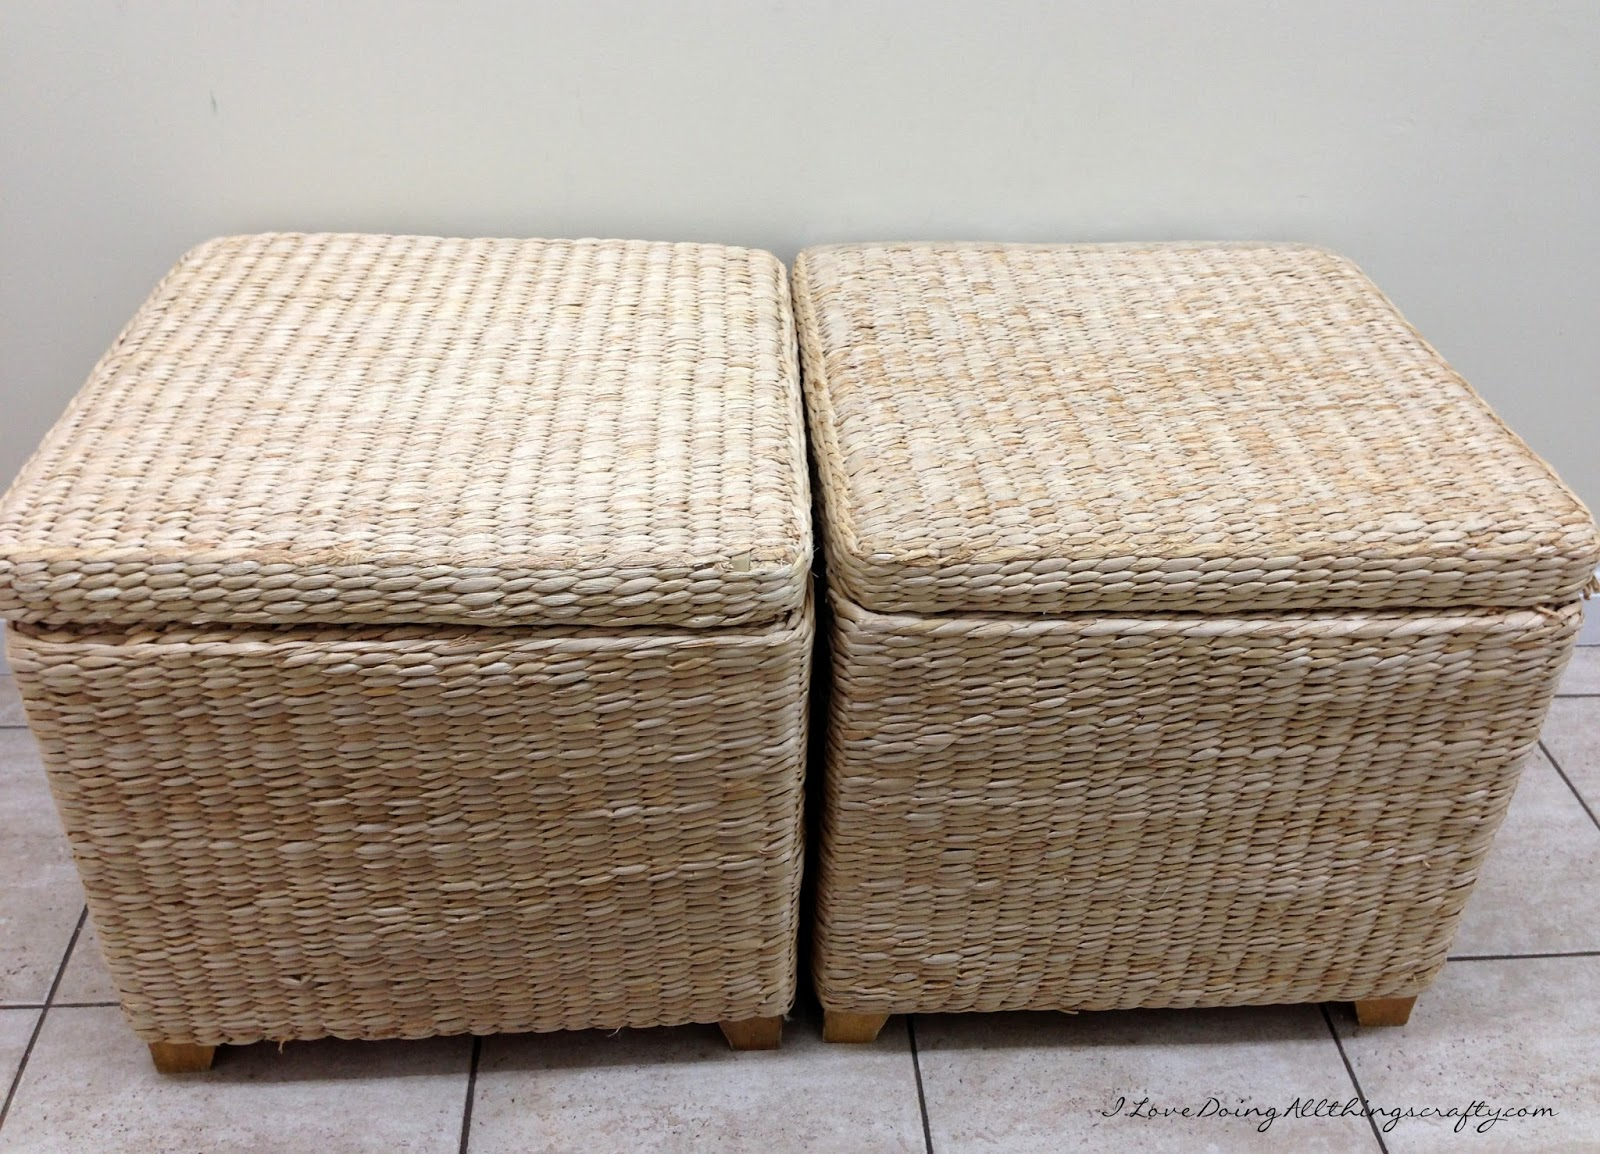 Storage Box Bench Seats Recovered + DIY Tutorial & I Love Doing All Things Crafty: Storage Box Bench Seats Recovered + ...